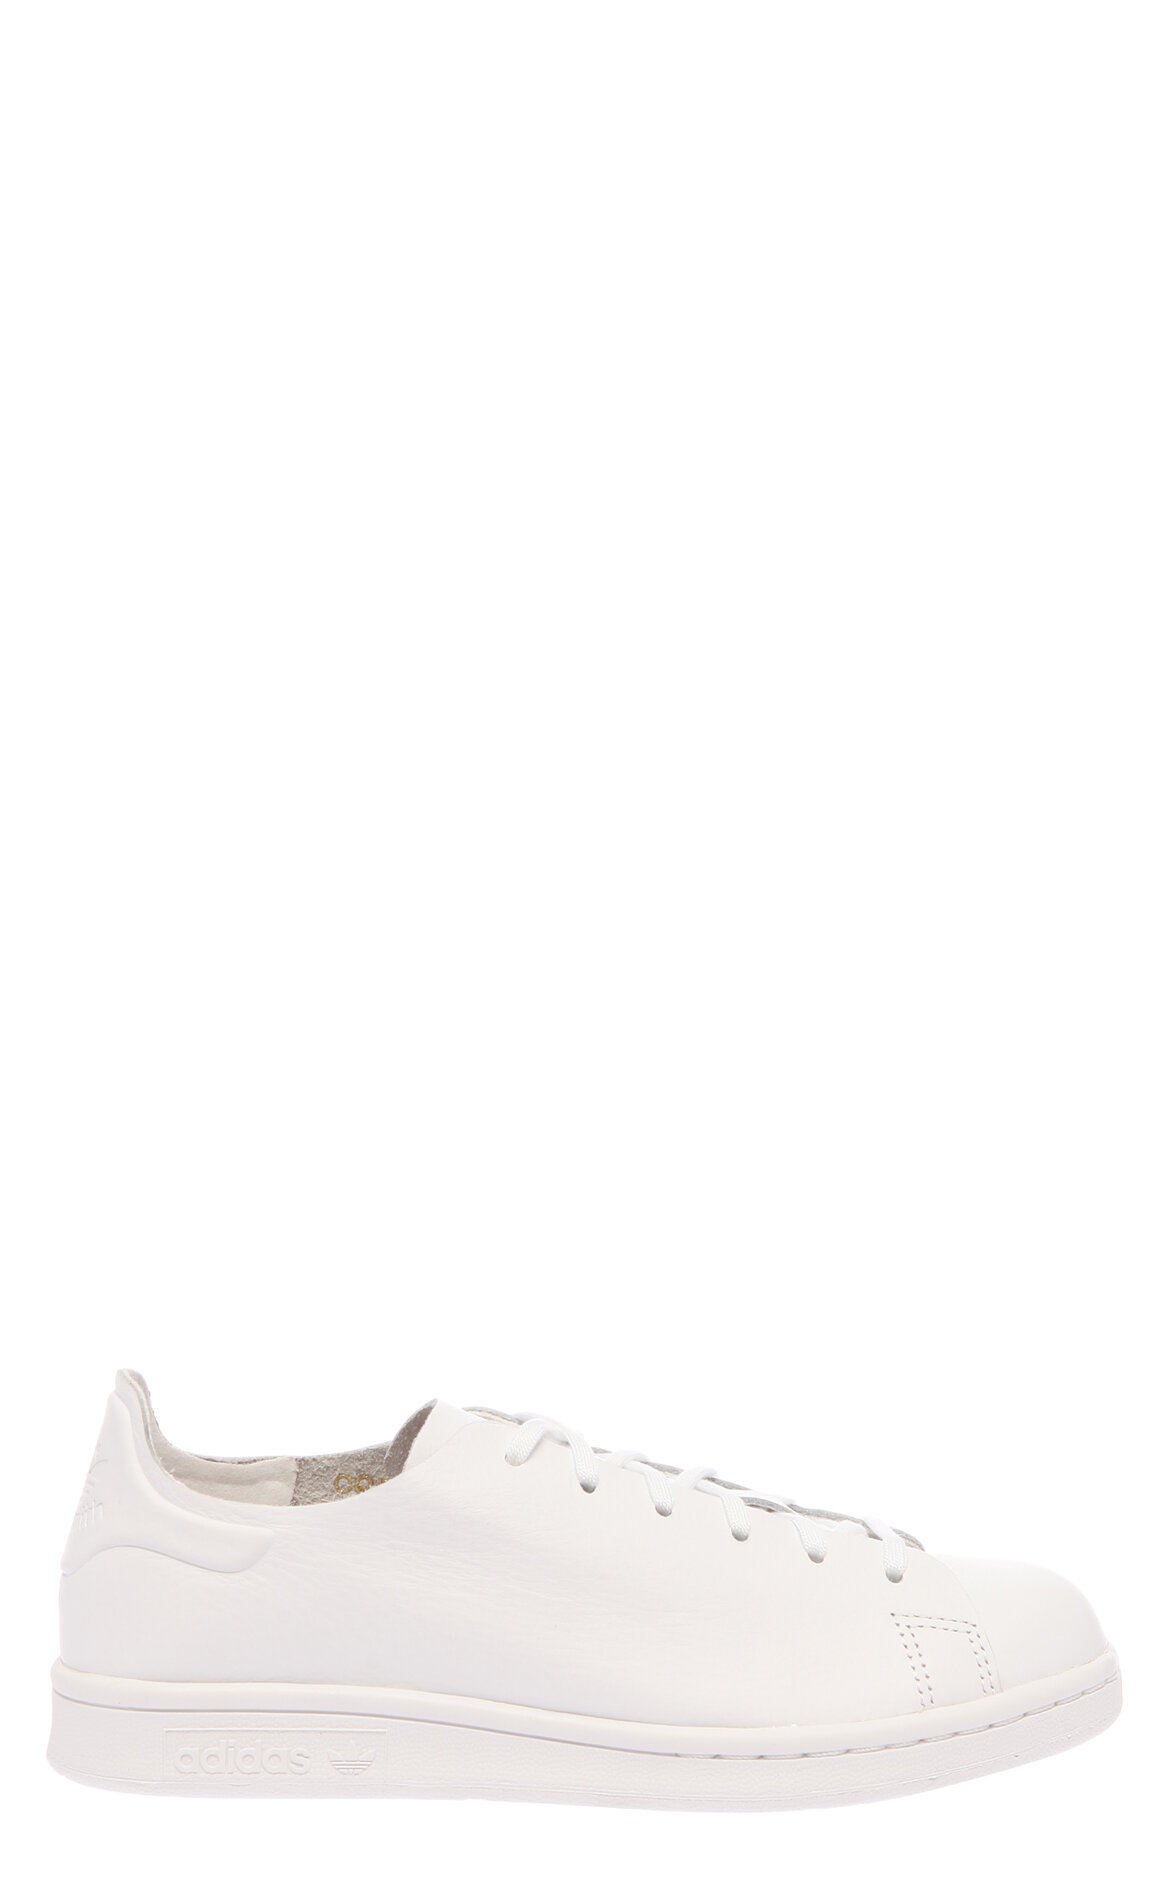 adidas originals Stan Smith Nuud Spor Ayakkabı